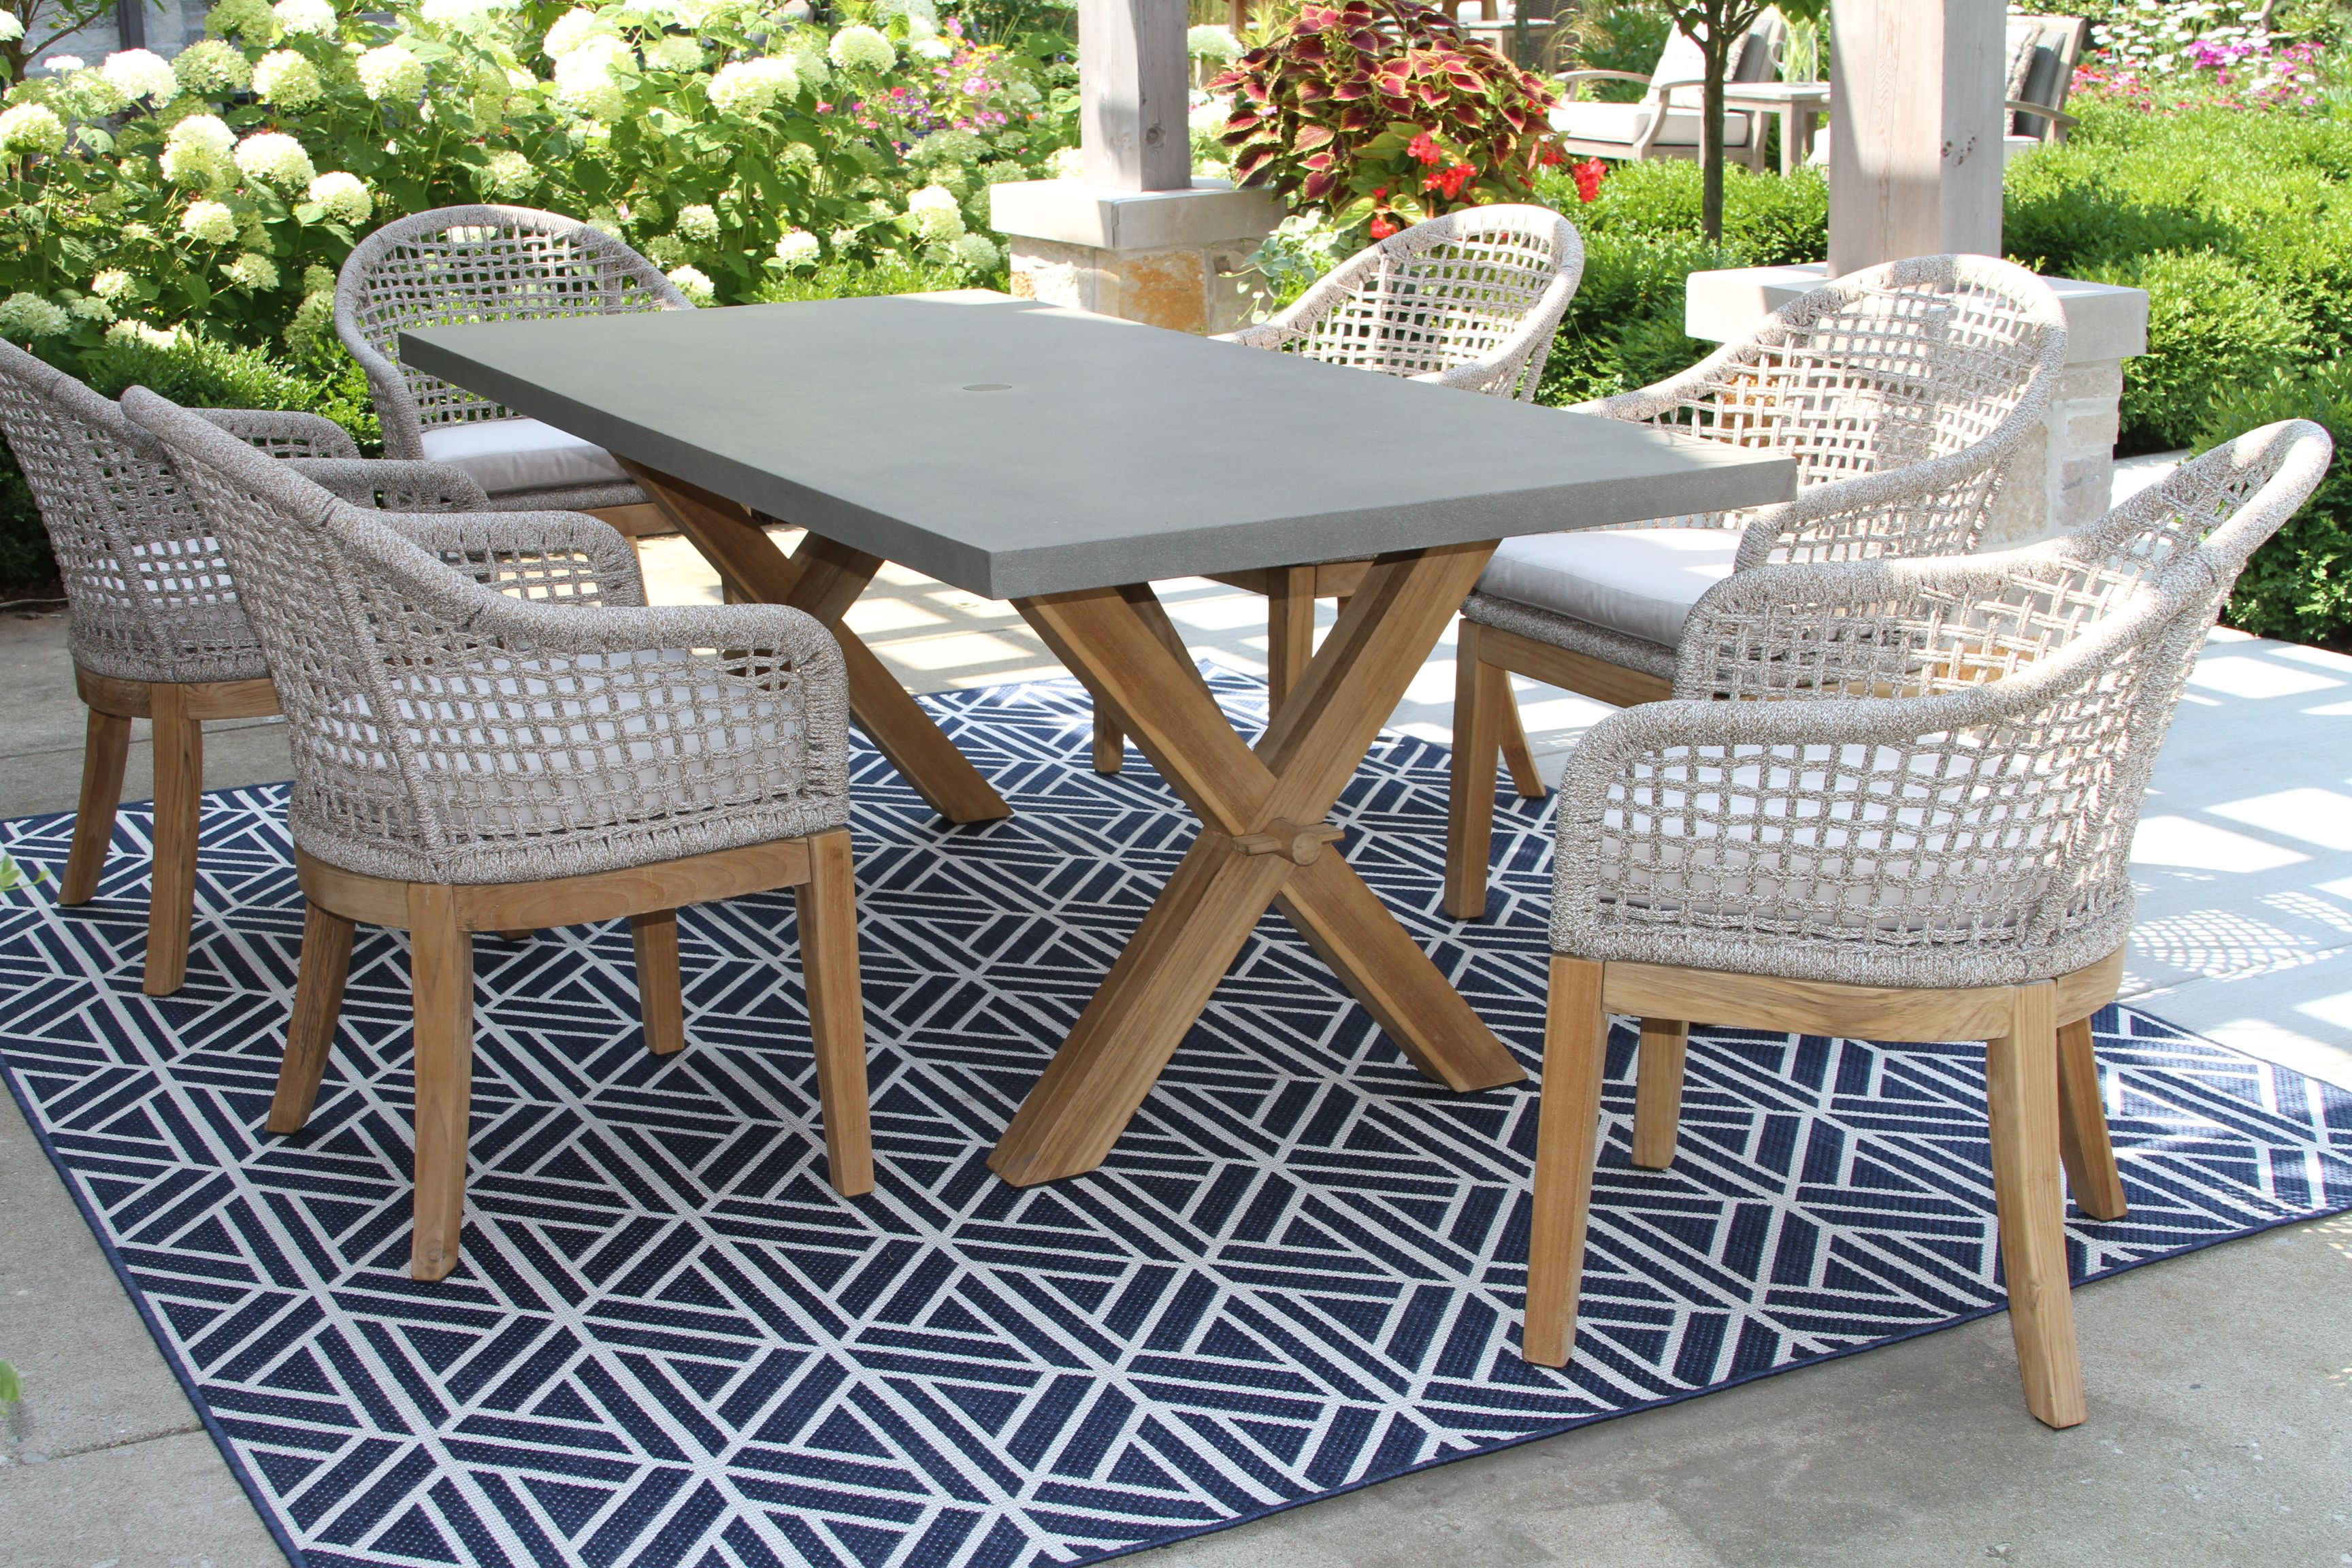 Rope Teak Dining Chair With Sunbrella Cushion 2 Pack And